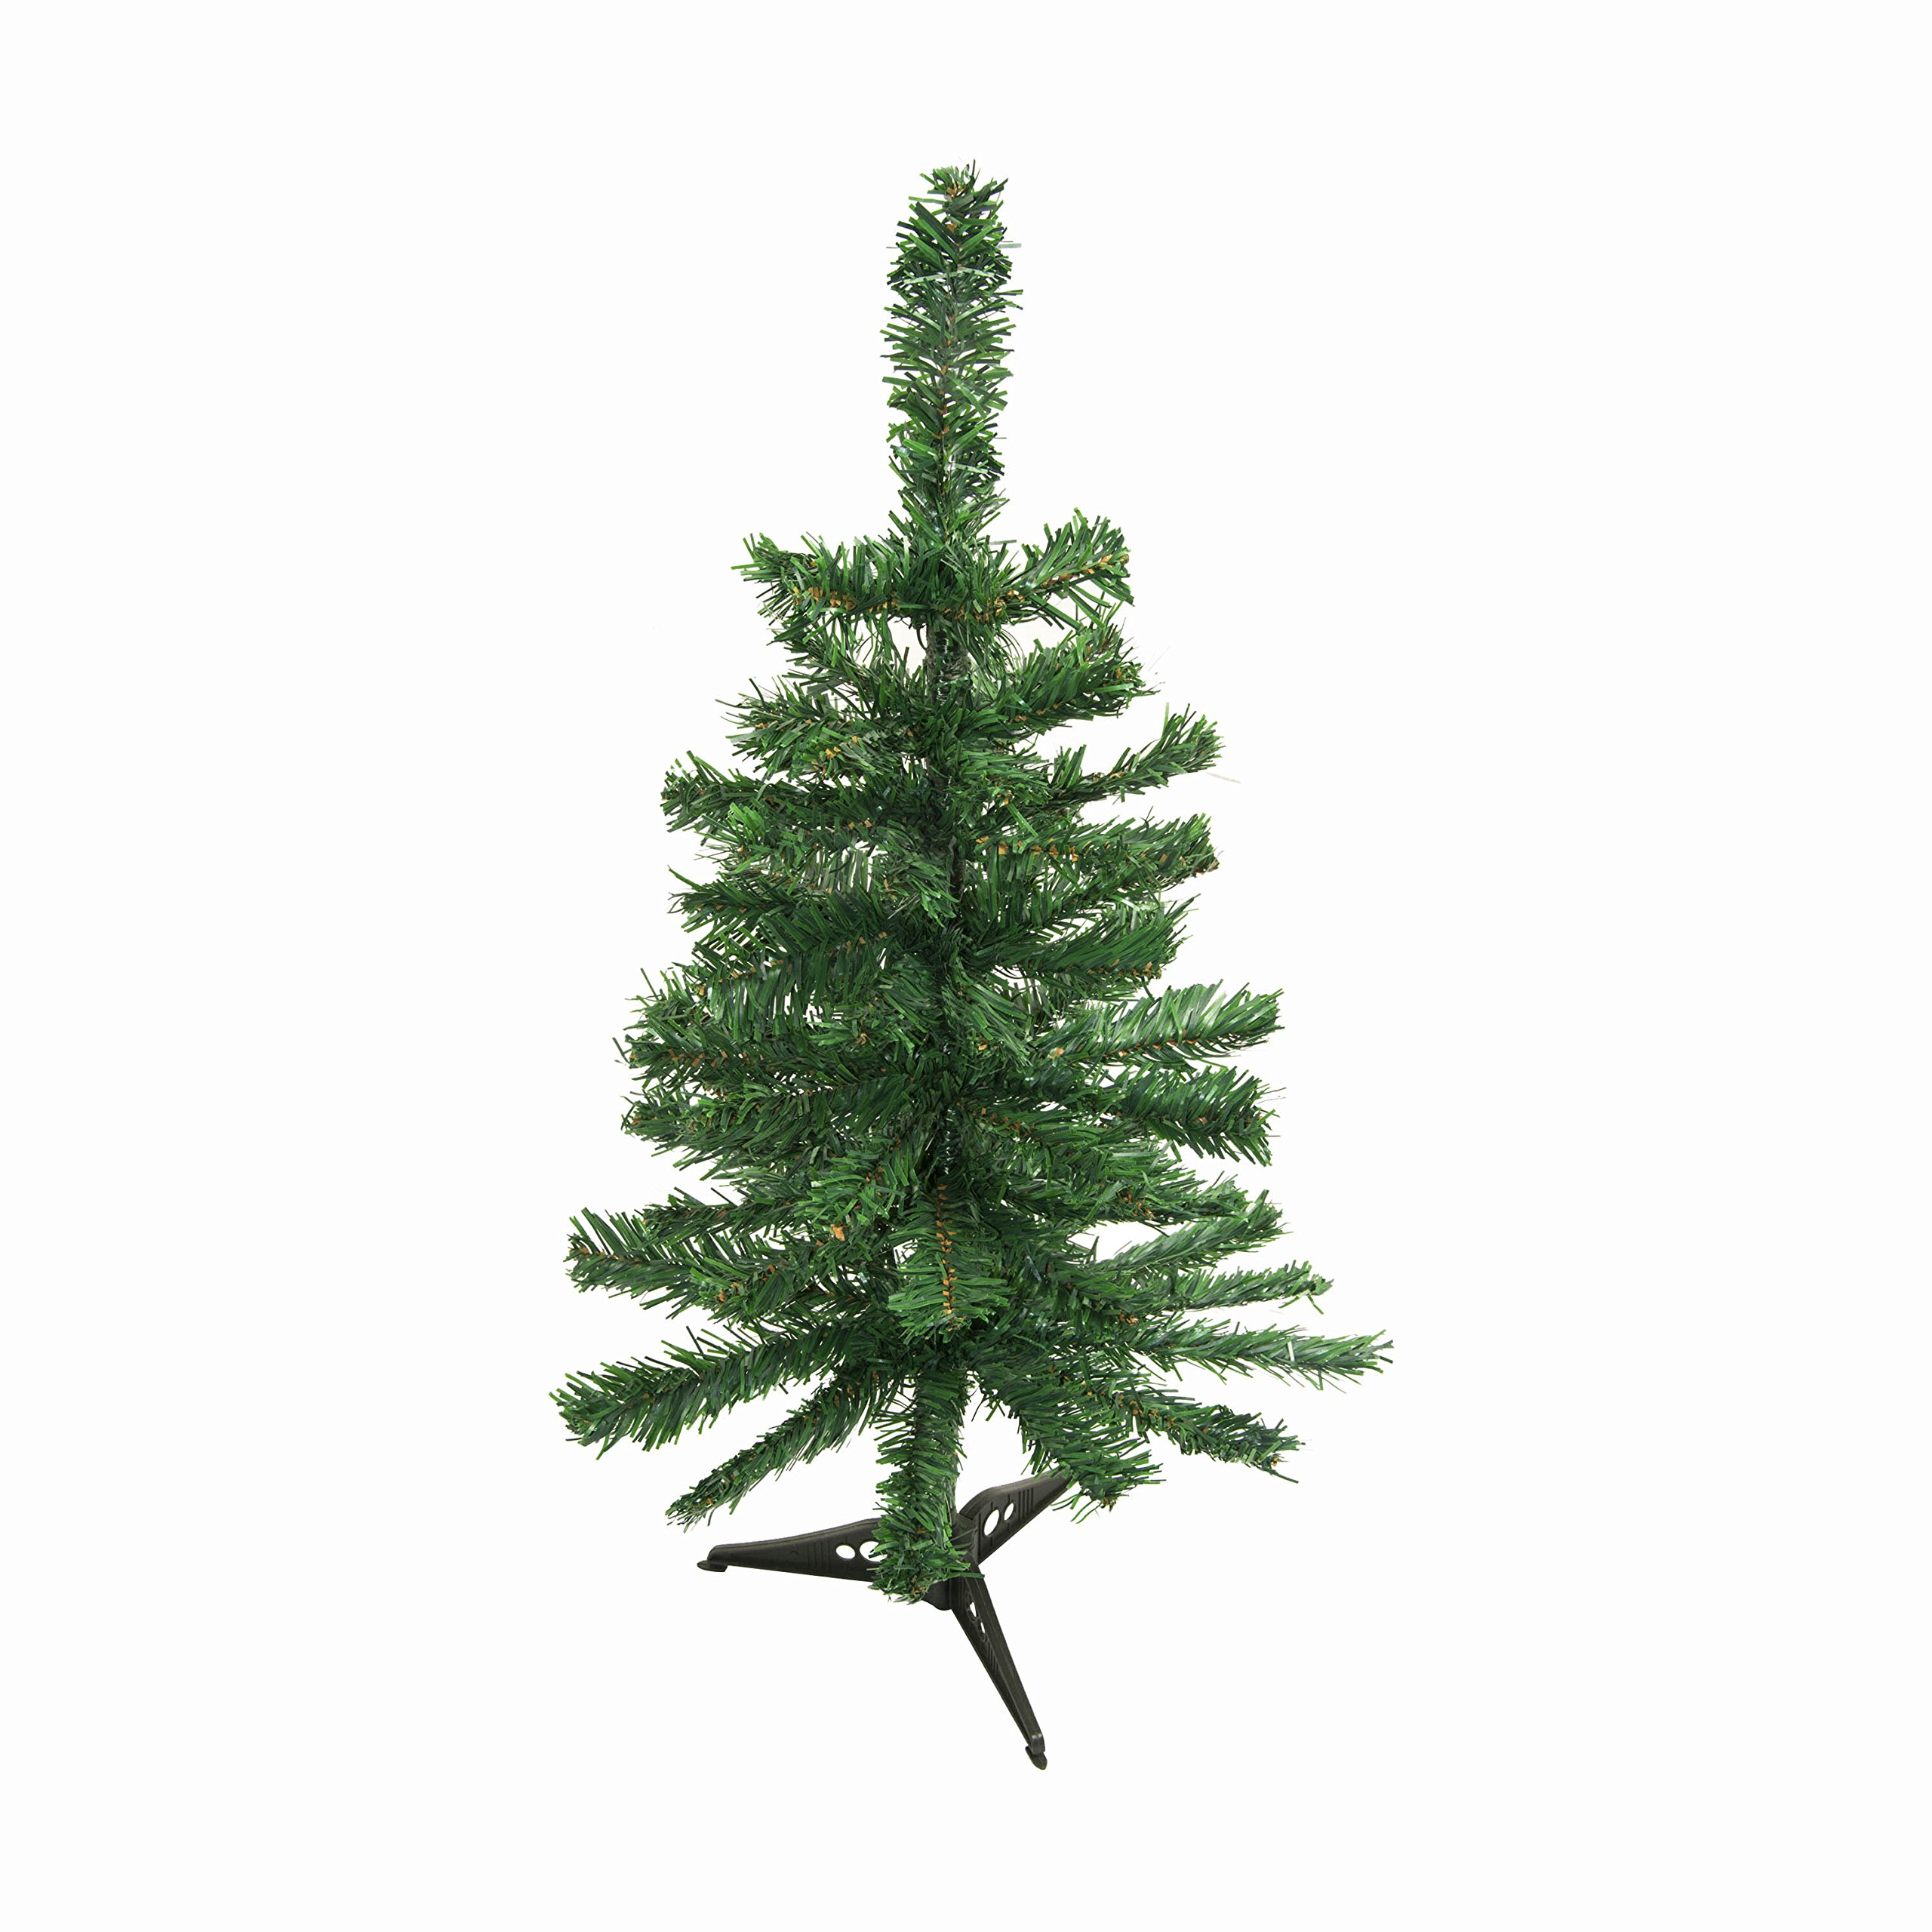 ALEKO CT24H12 Artificial Holiday Christmas Tree Premium Pine with Stand 2 Foot Green